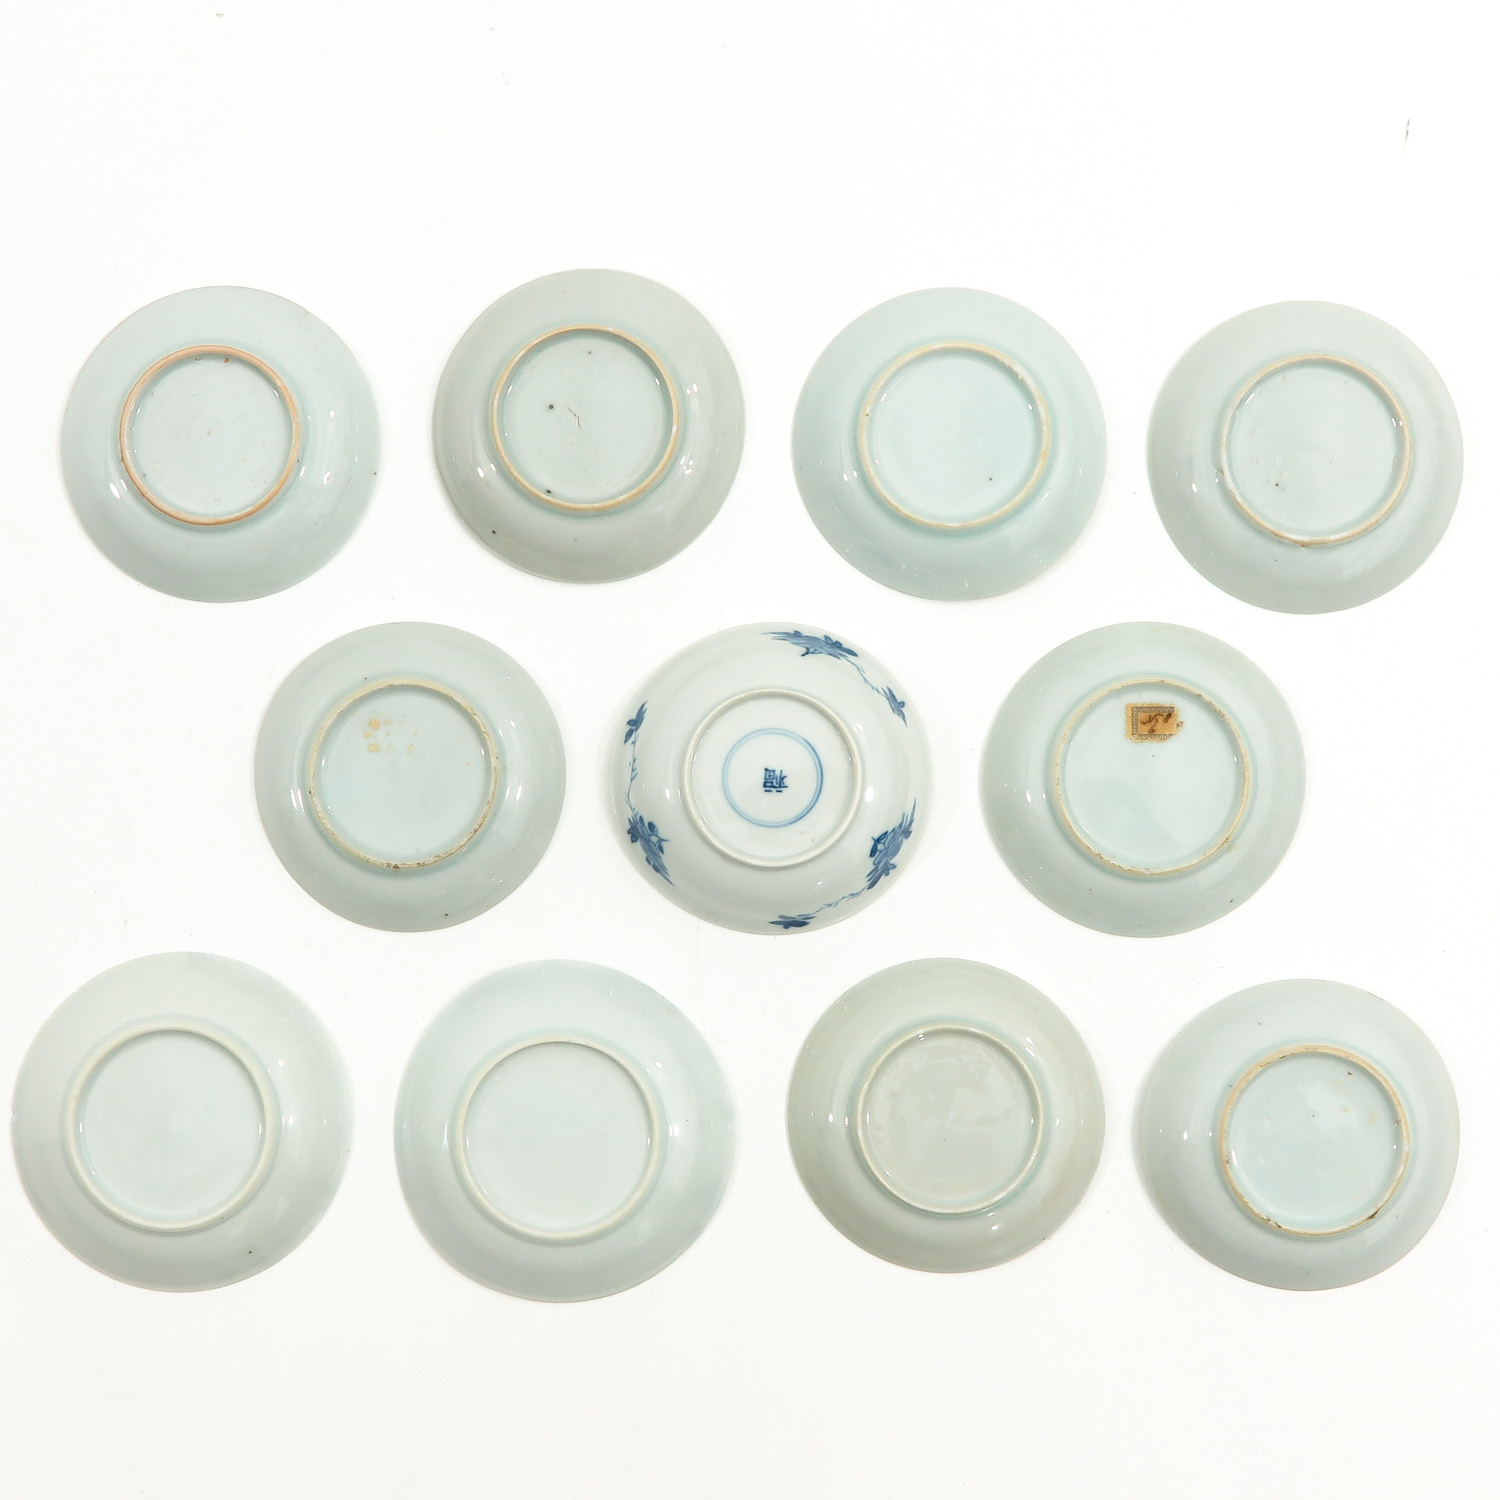 A Collection of 11 Small Plates - Image 2 of 10